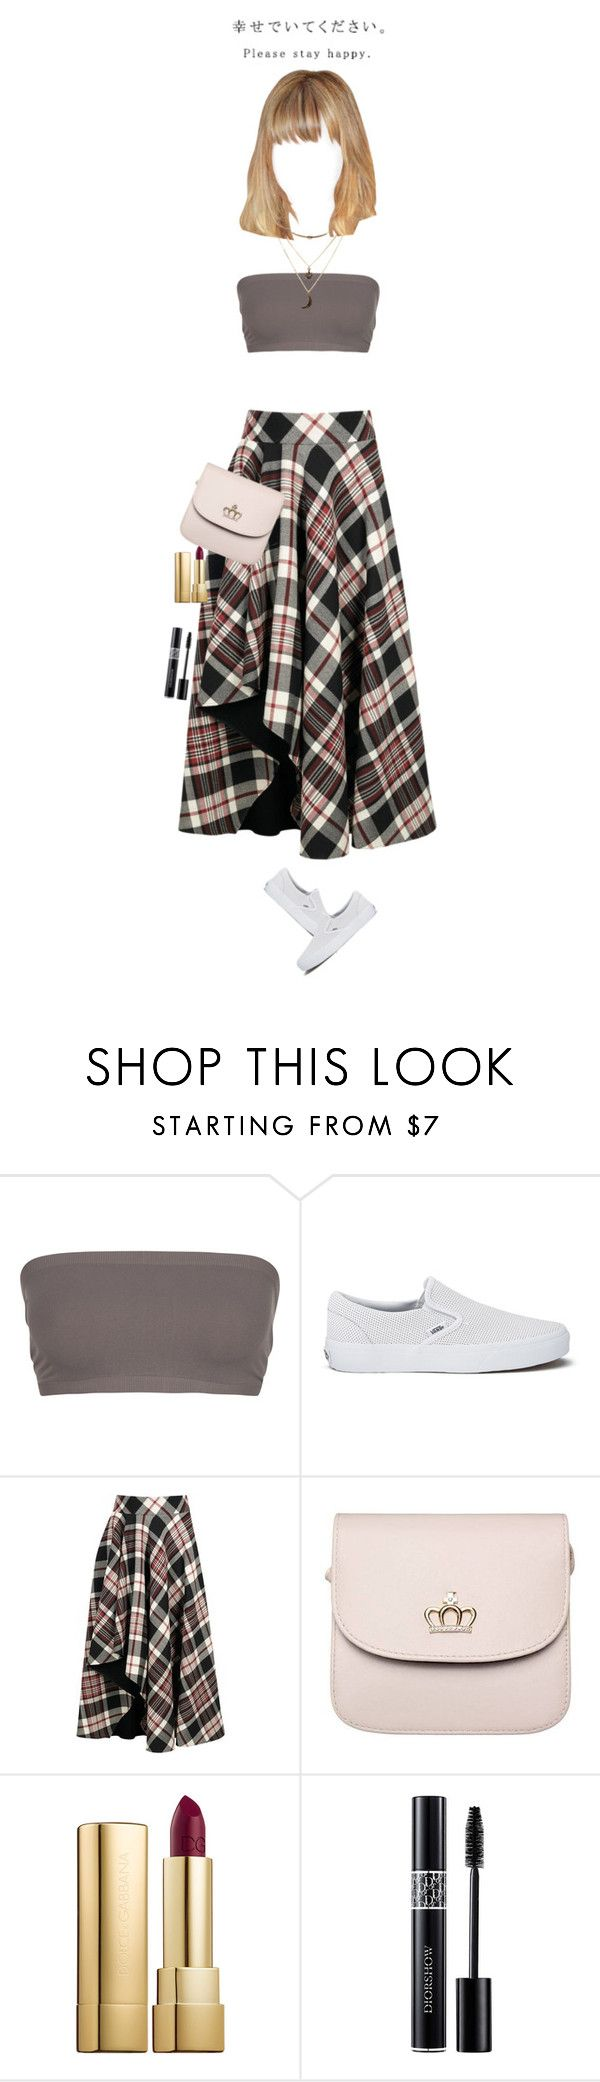 """""""Hipster-ish Day"""" by luxury-kamar ❤ liked on Polyvore featuring Full Tilt, Vans, Alexander McQueen, Dolce&Gabbana, Christian Dior and Charlotte Russe"""